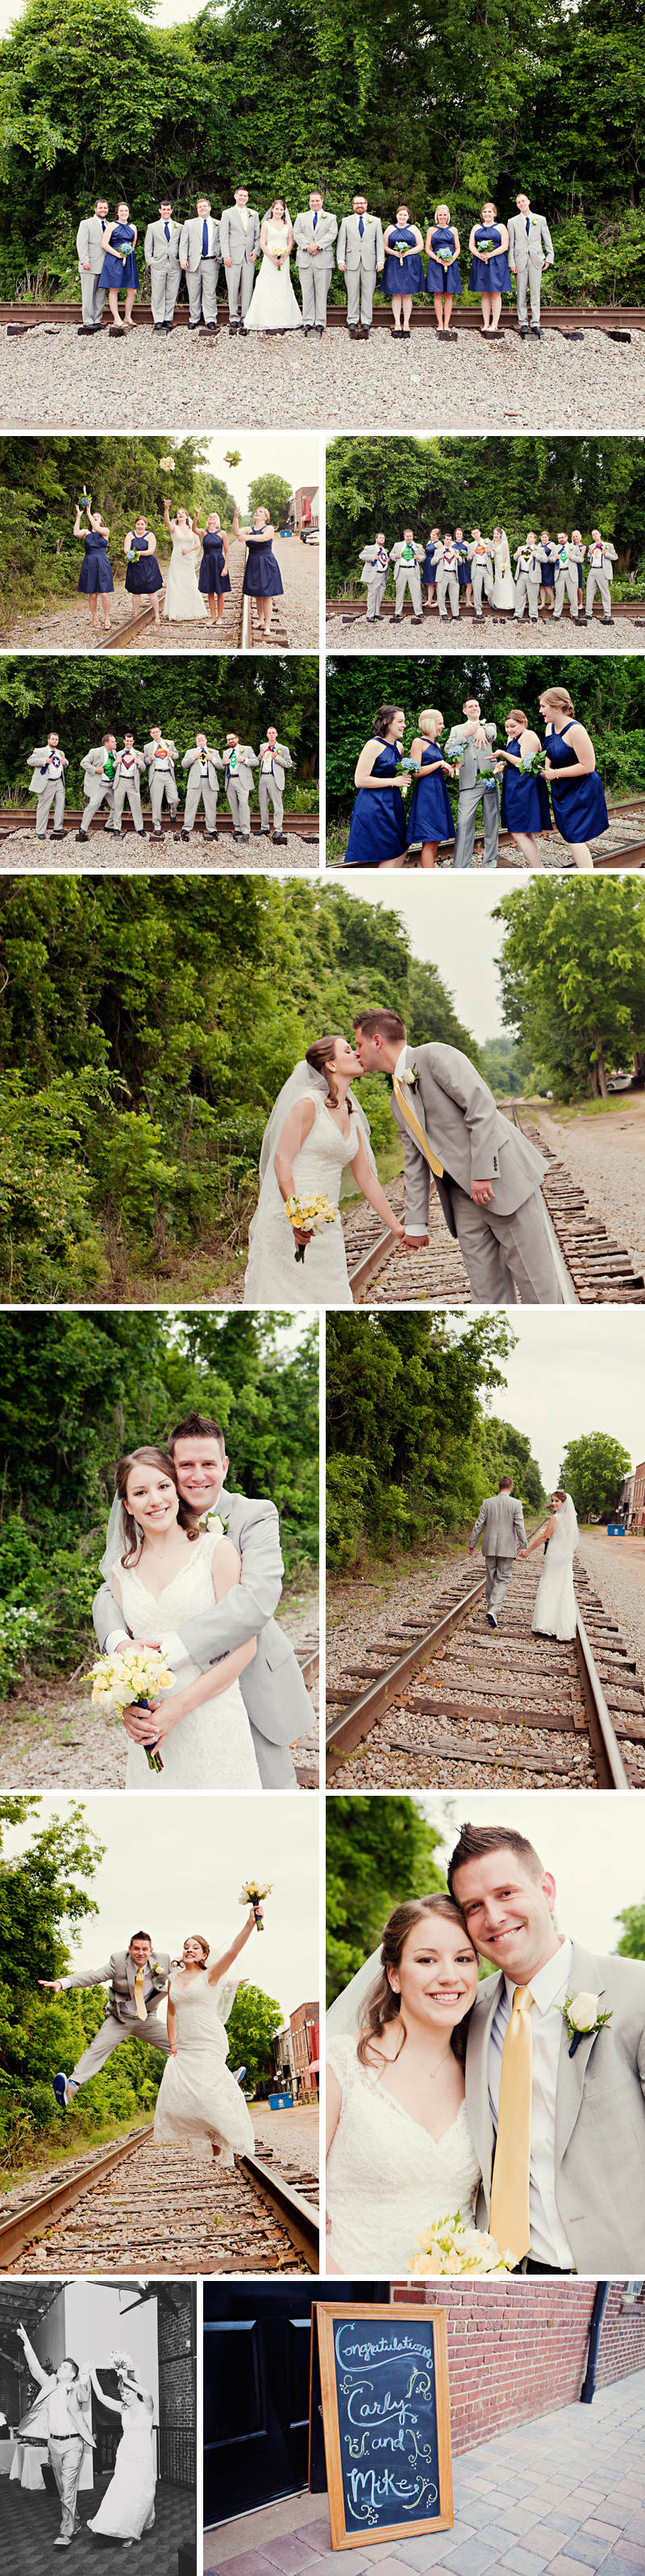 Raleigh-Wedding-Photographerc007